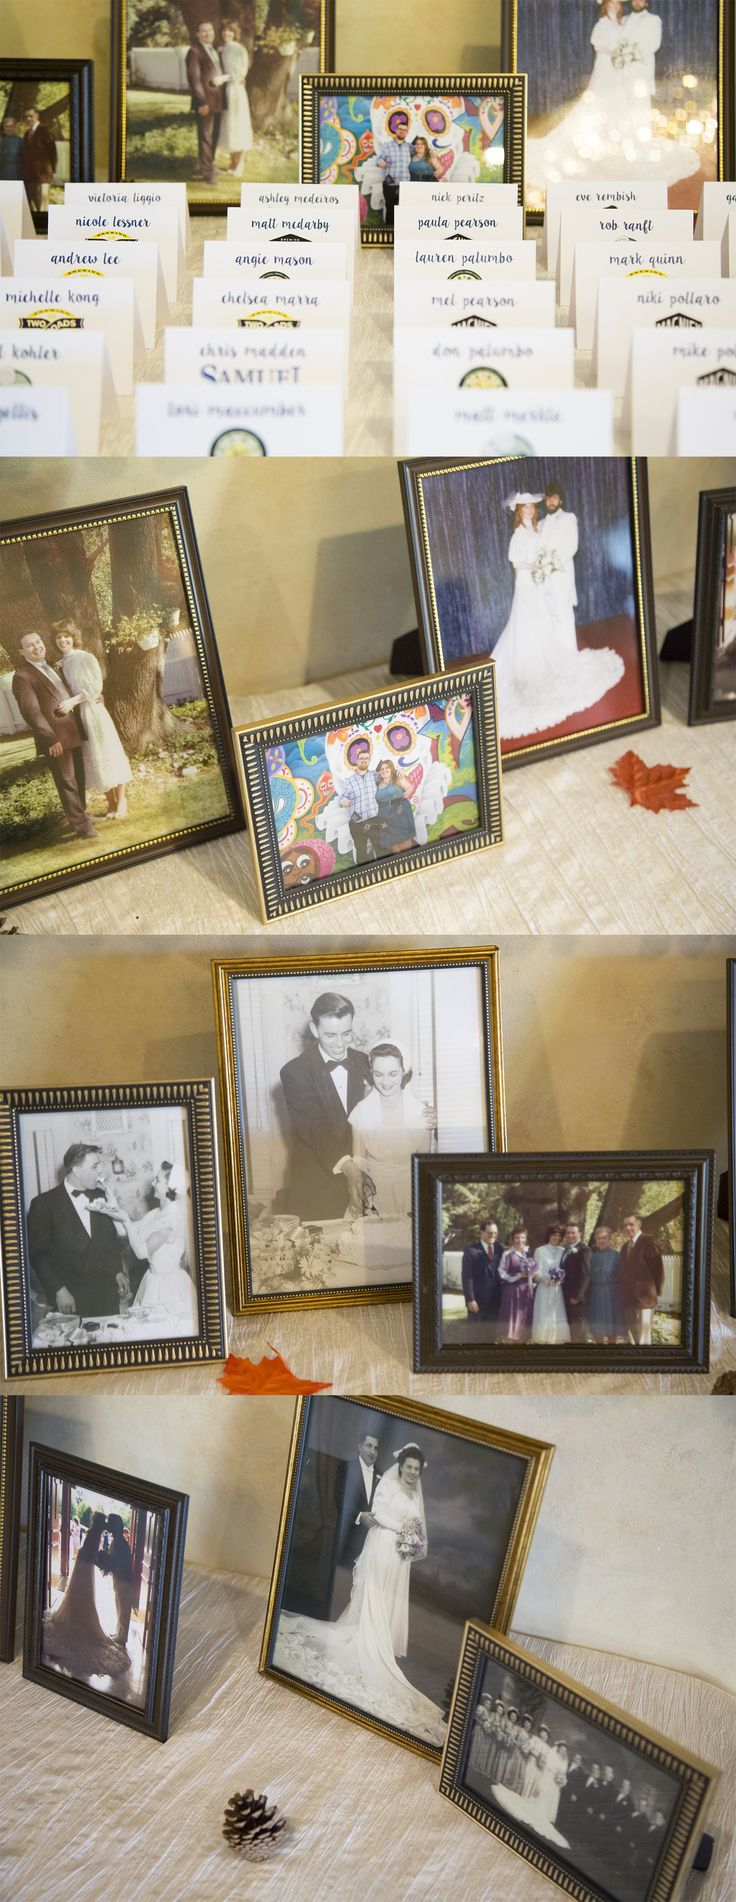 Wedding Seating Cards | Parents Grandparents Wedding Pictures | Memorial Table at Wedding